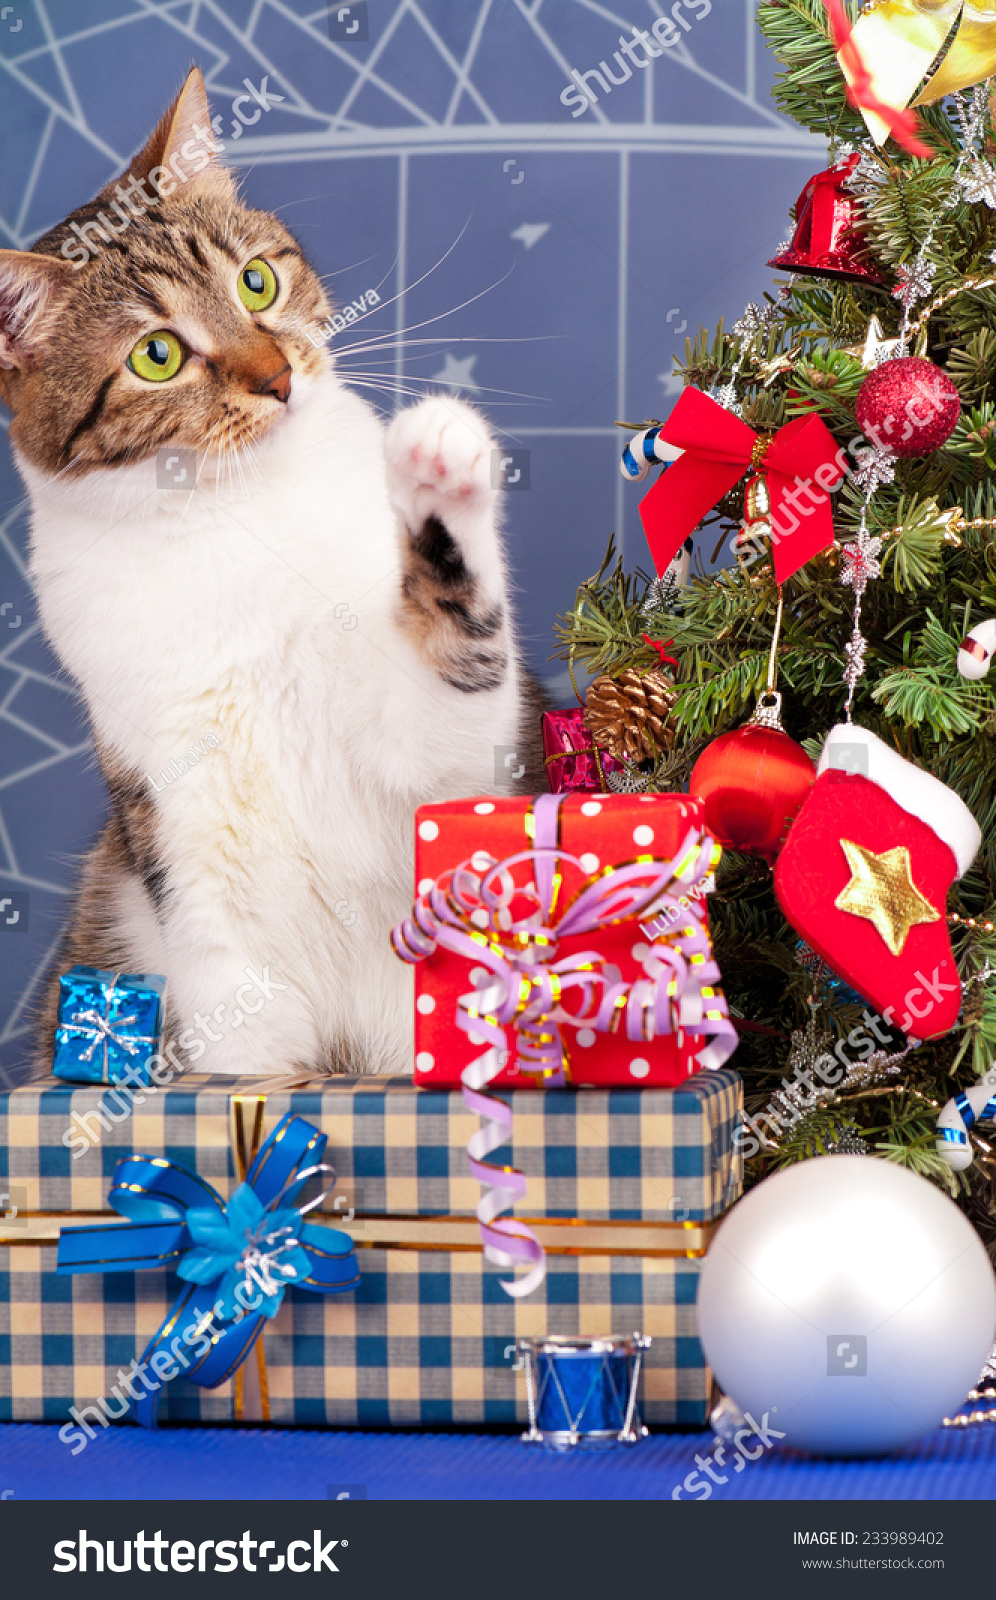 Toys For Christmas For Adults : Adult tabby near christmas spruce gifts stock photo